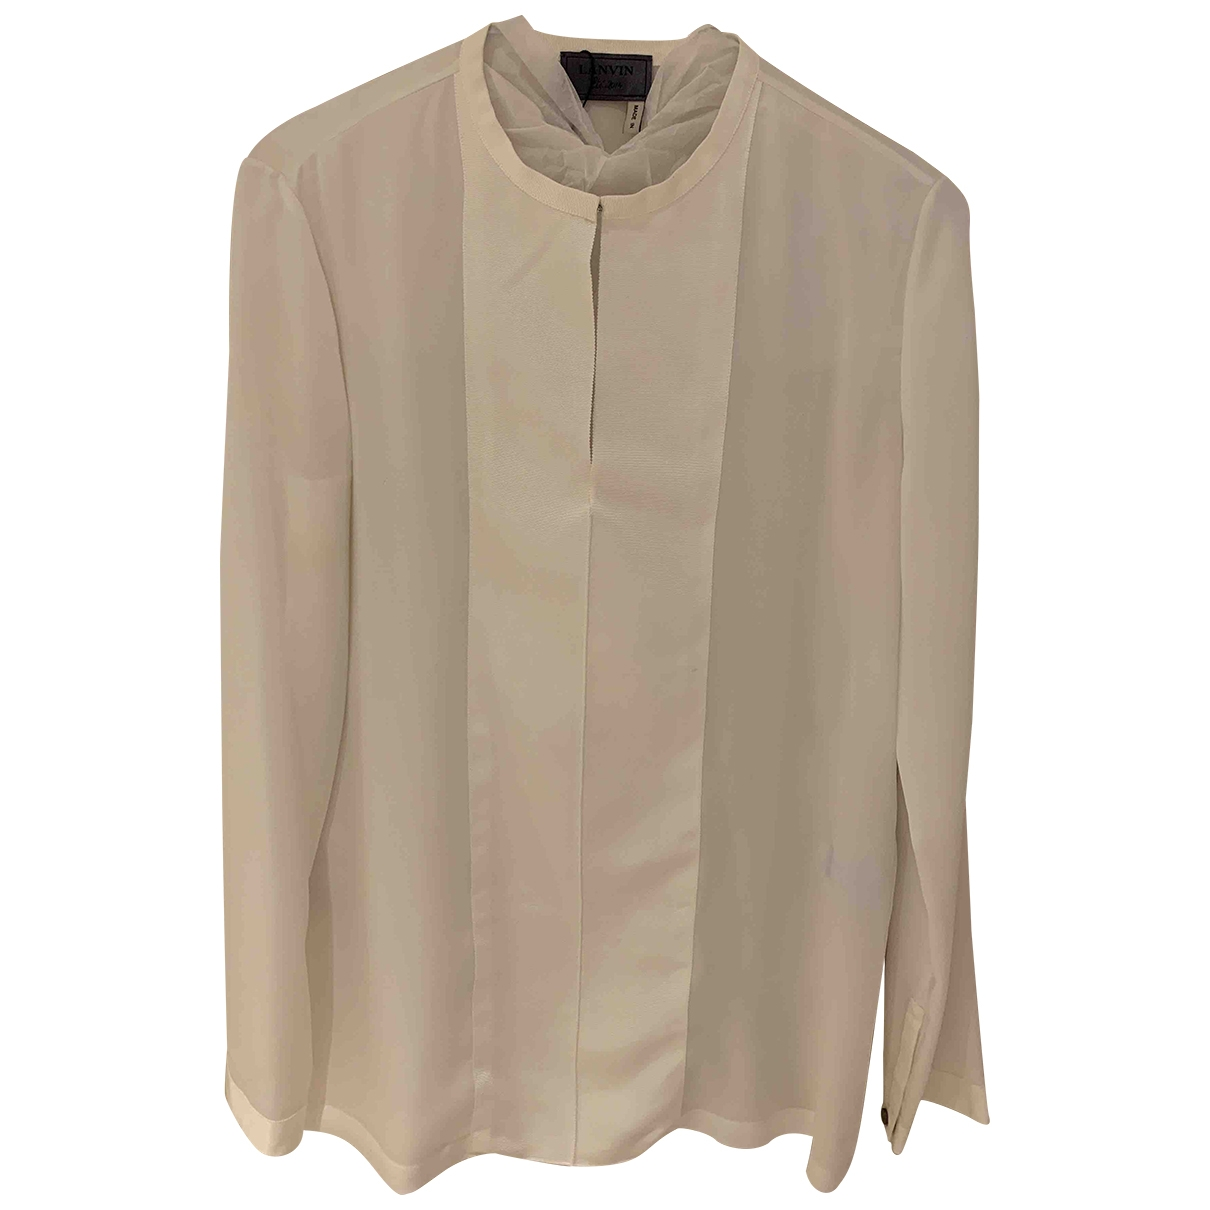 Lanvin \N White  top for Women 38 FR